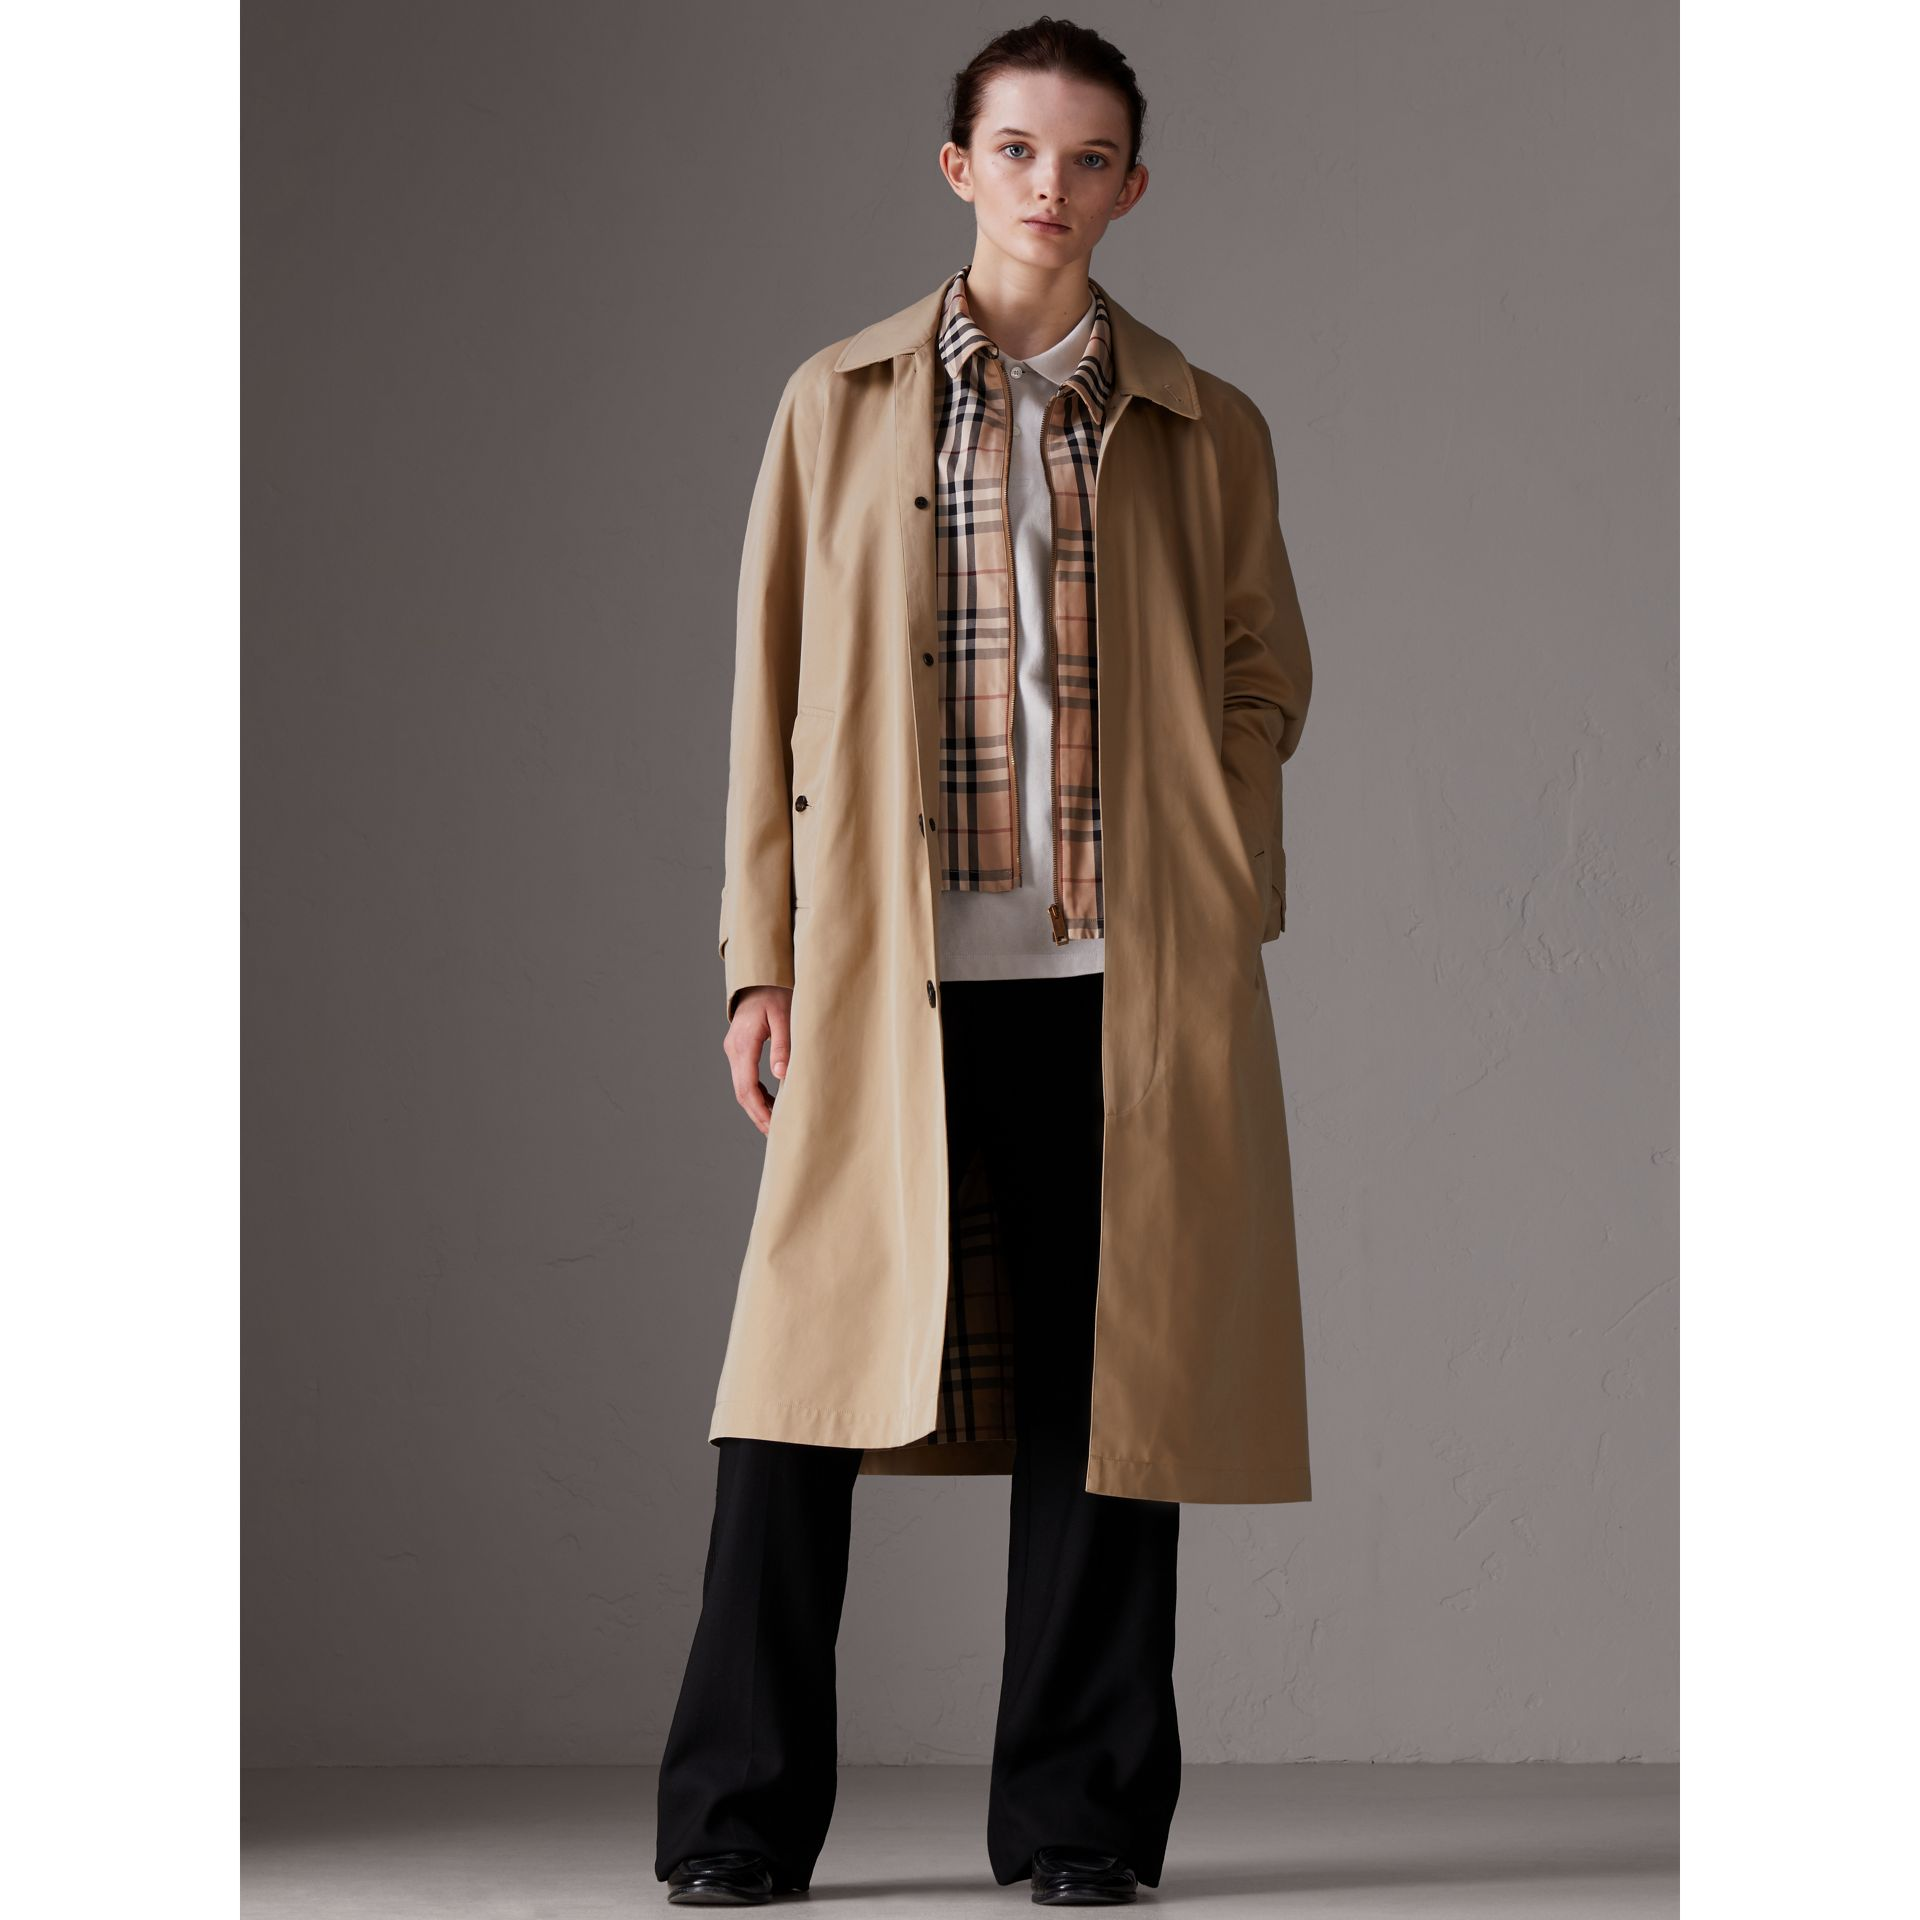 Gosha x Burberry Reconstructed Car Coat in Honey - Men | Burberry United Kingdom - gallery image 3